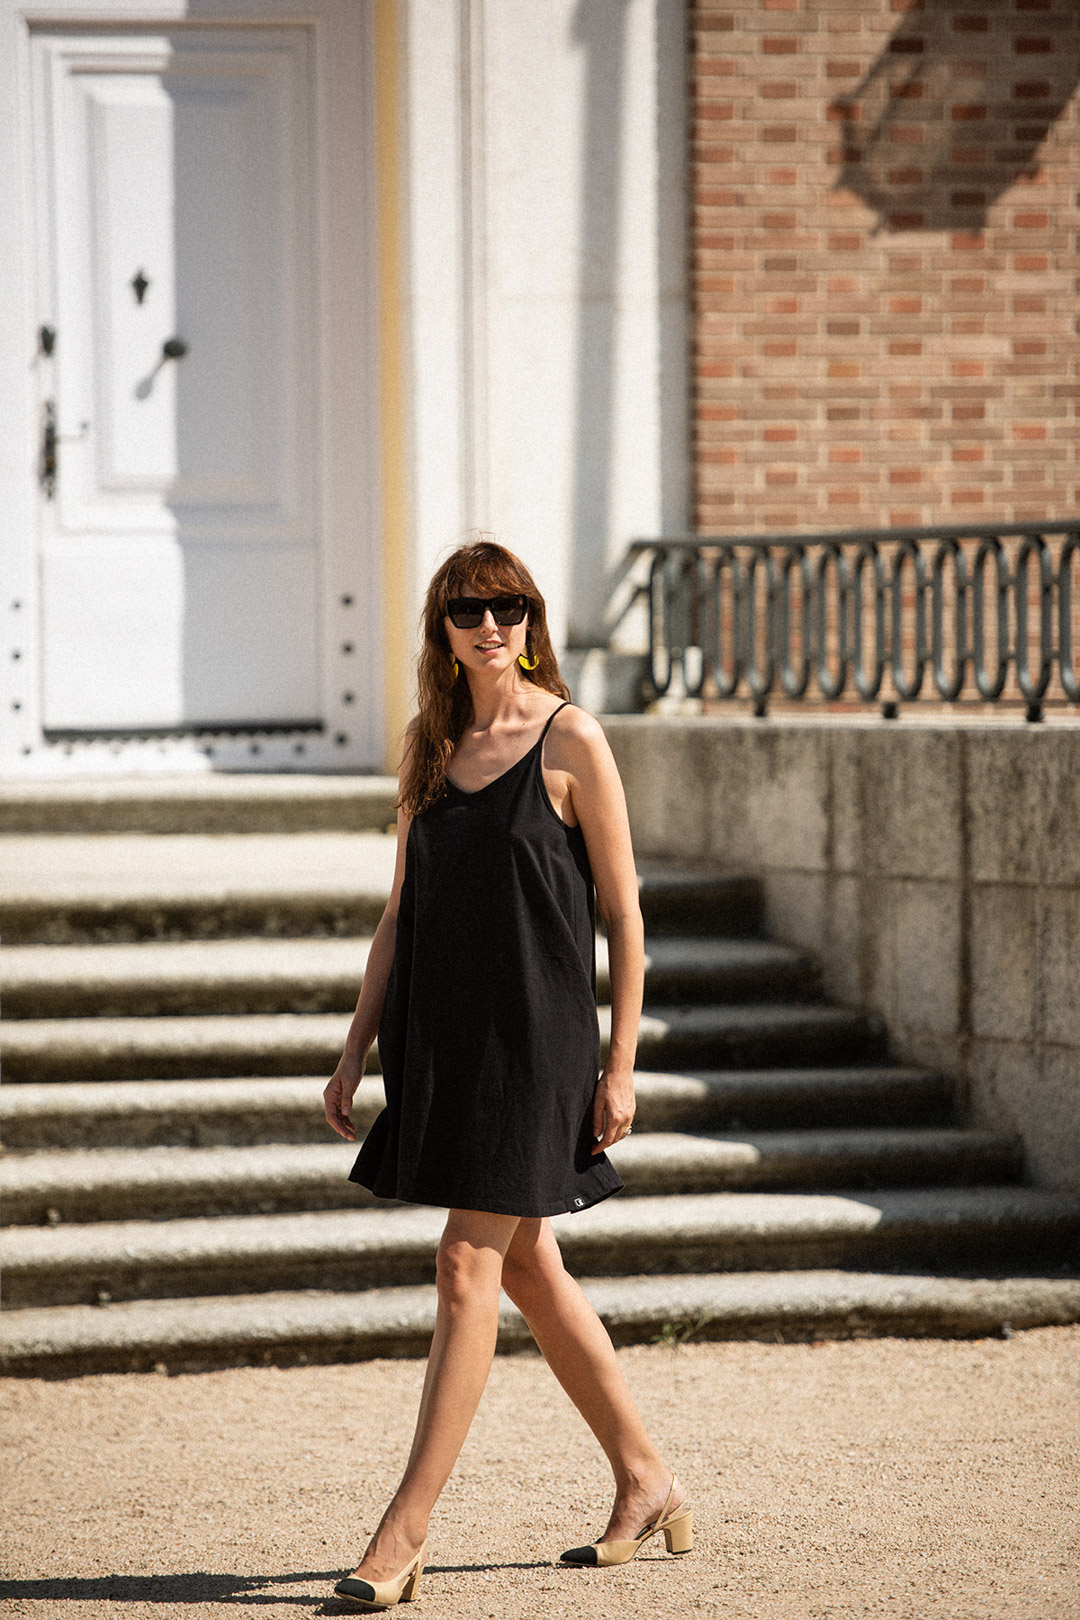 black-dress-summer-mayte-de-la-iglesia-1